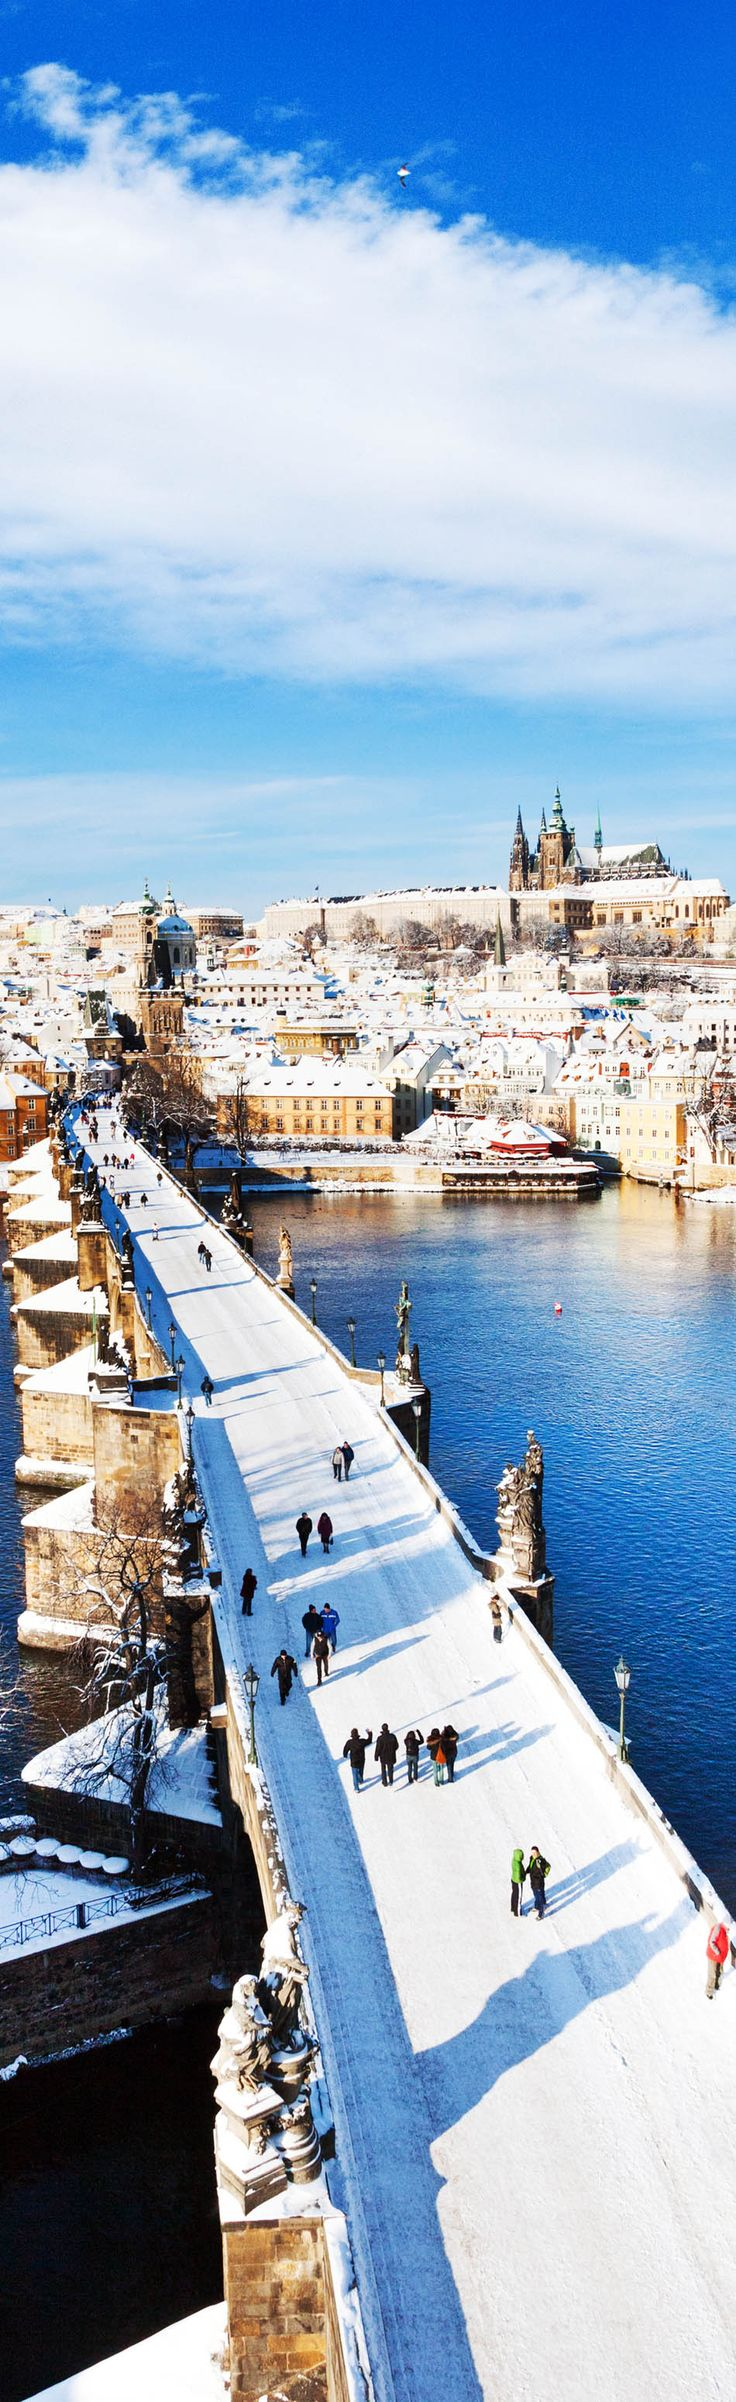 Prague castle and Charles bridge, Prague (UNESCO), Czech republic   |   The 20 Most Stunning Fairytale Castles in Winter